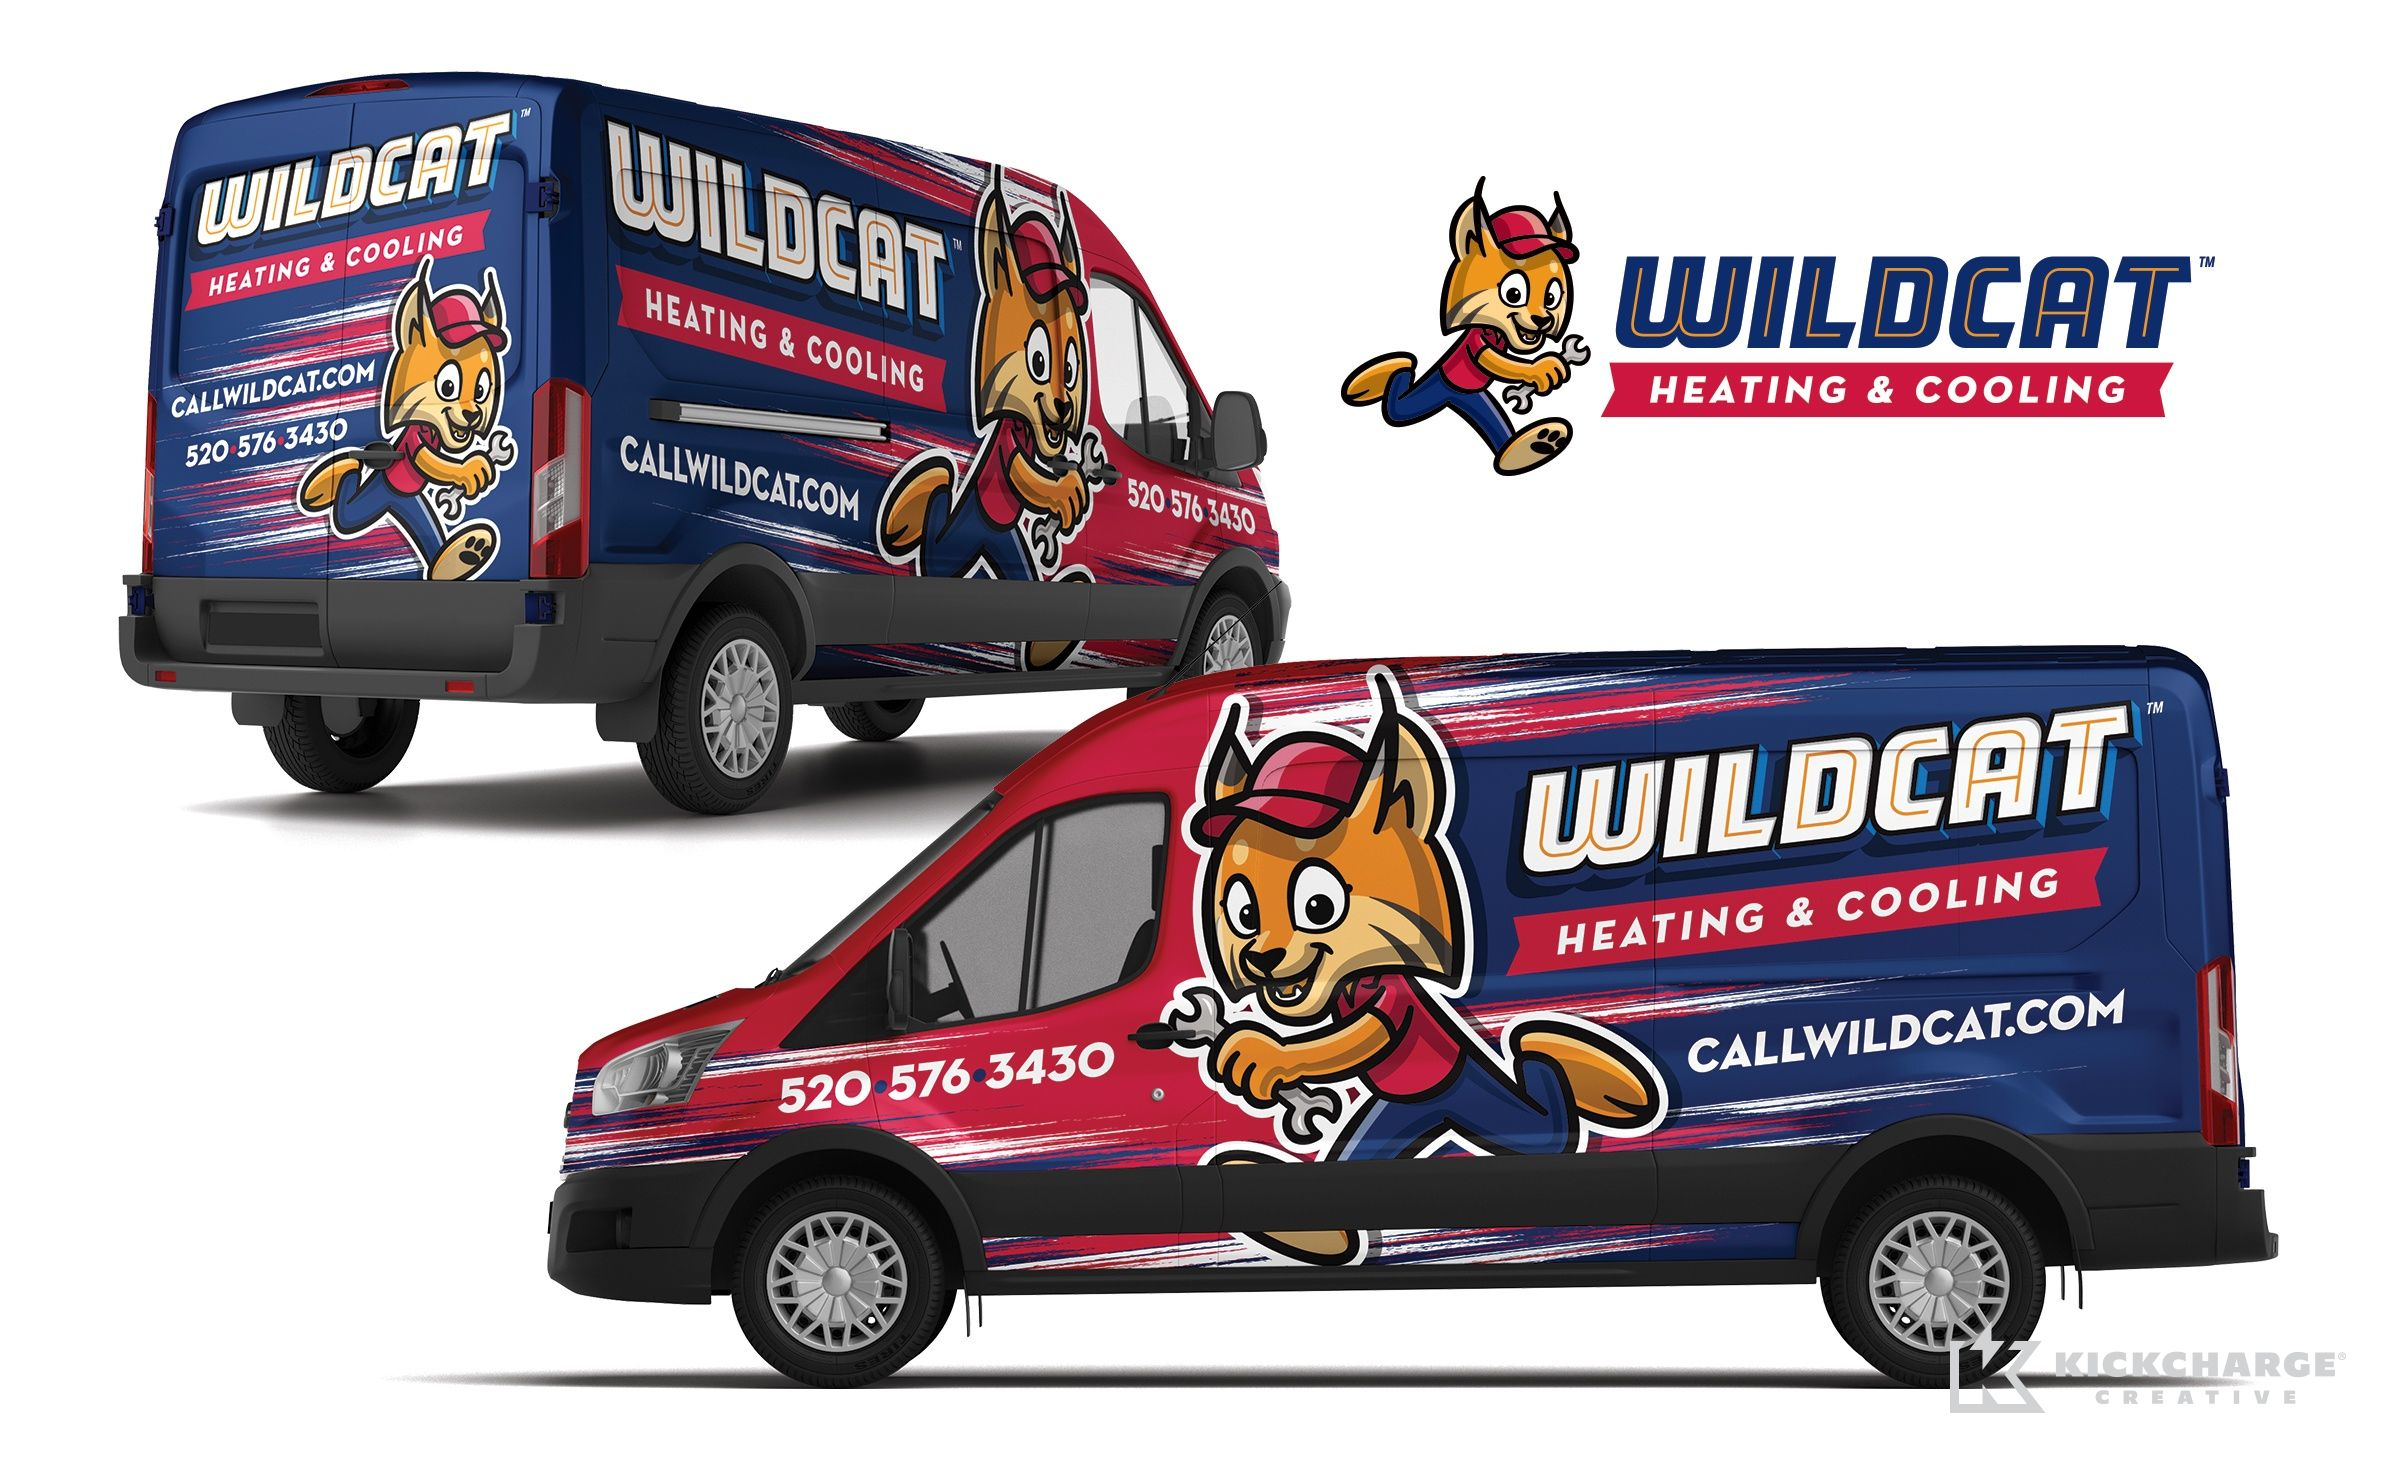 Wildcat Heating Cooling Kickcharge Creative In 2020 Car Wrap